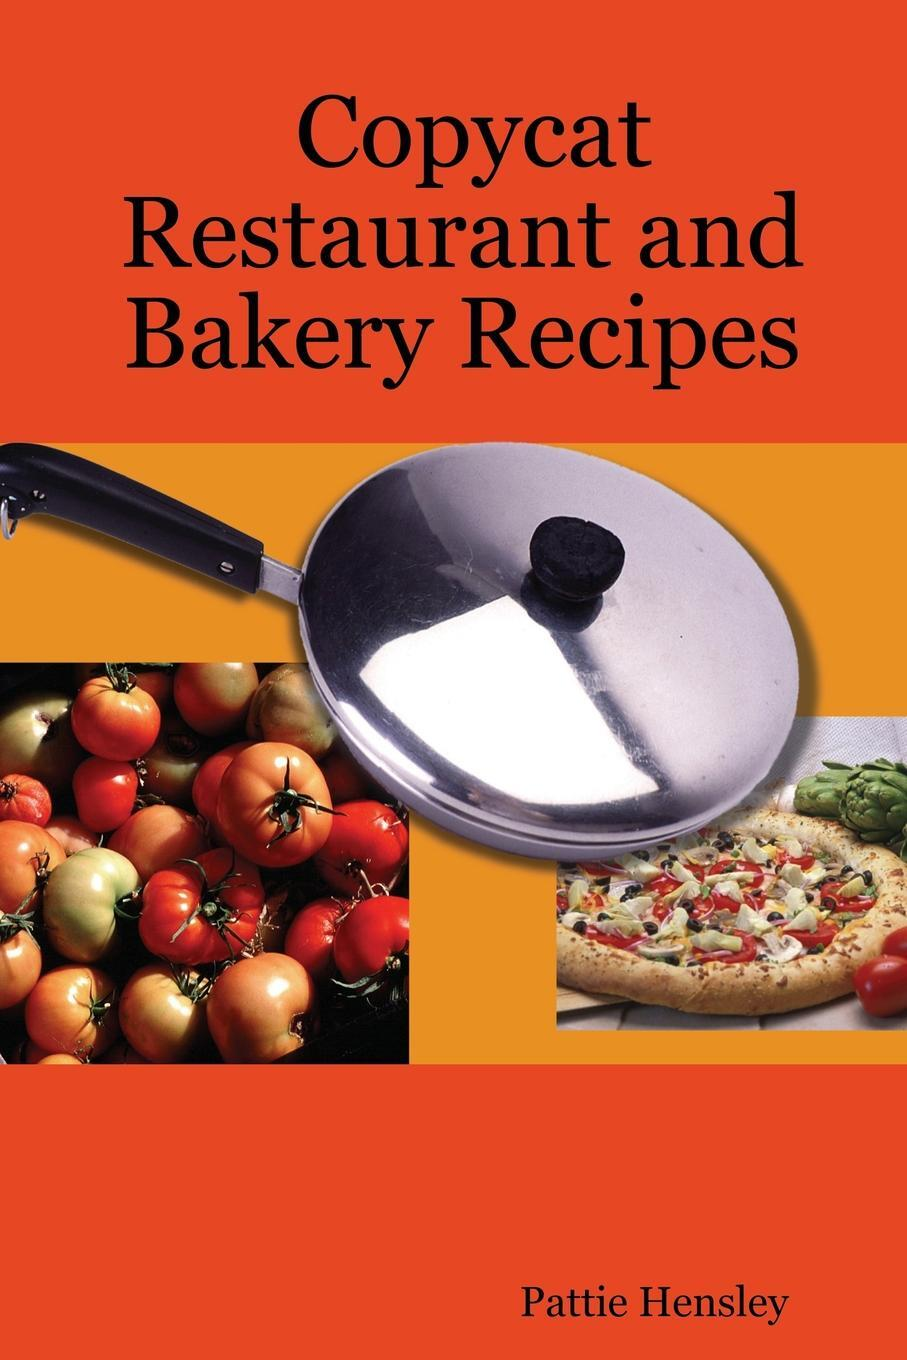 Copycat Restaurant and Bakery Recipes